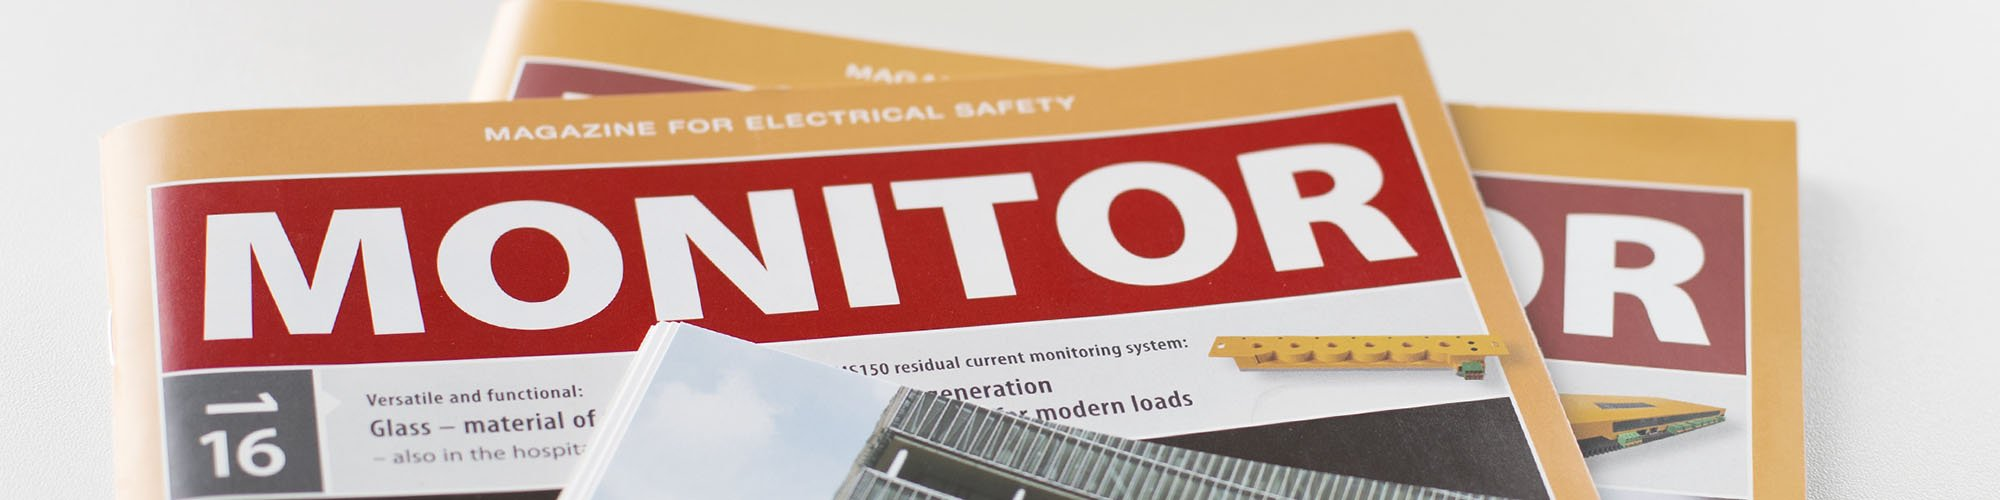 MONITOR: The magazine for electrical safety